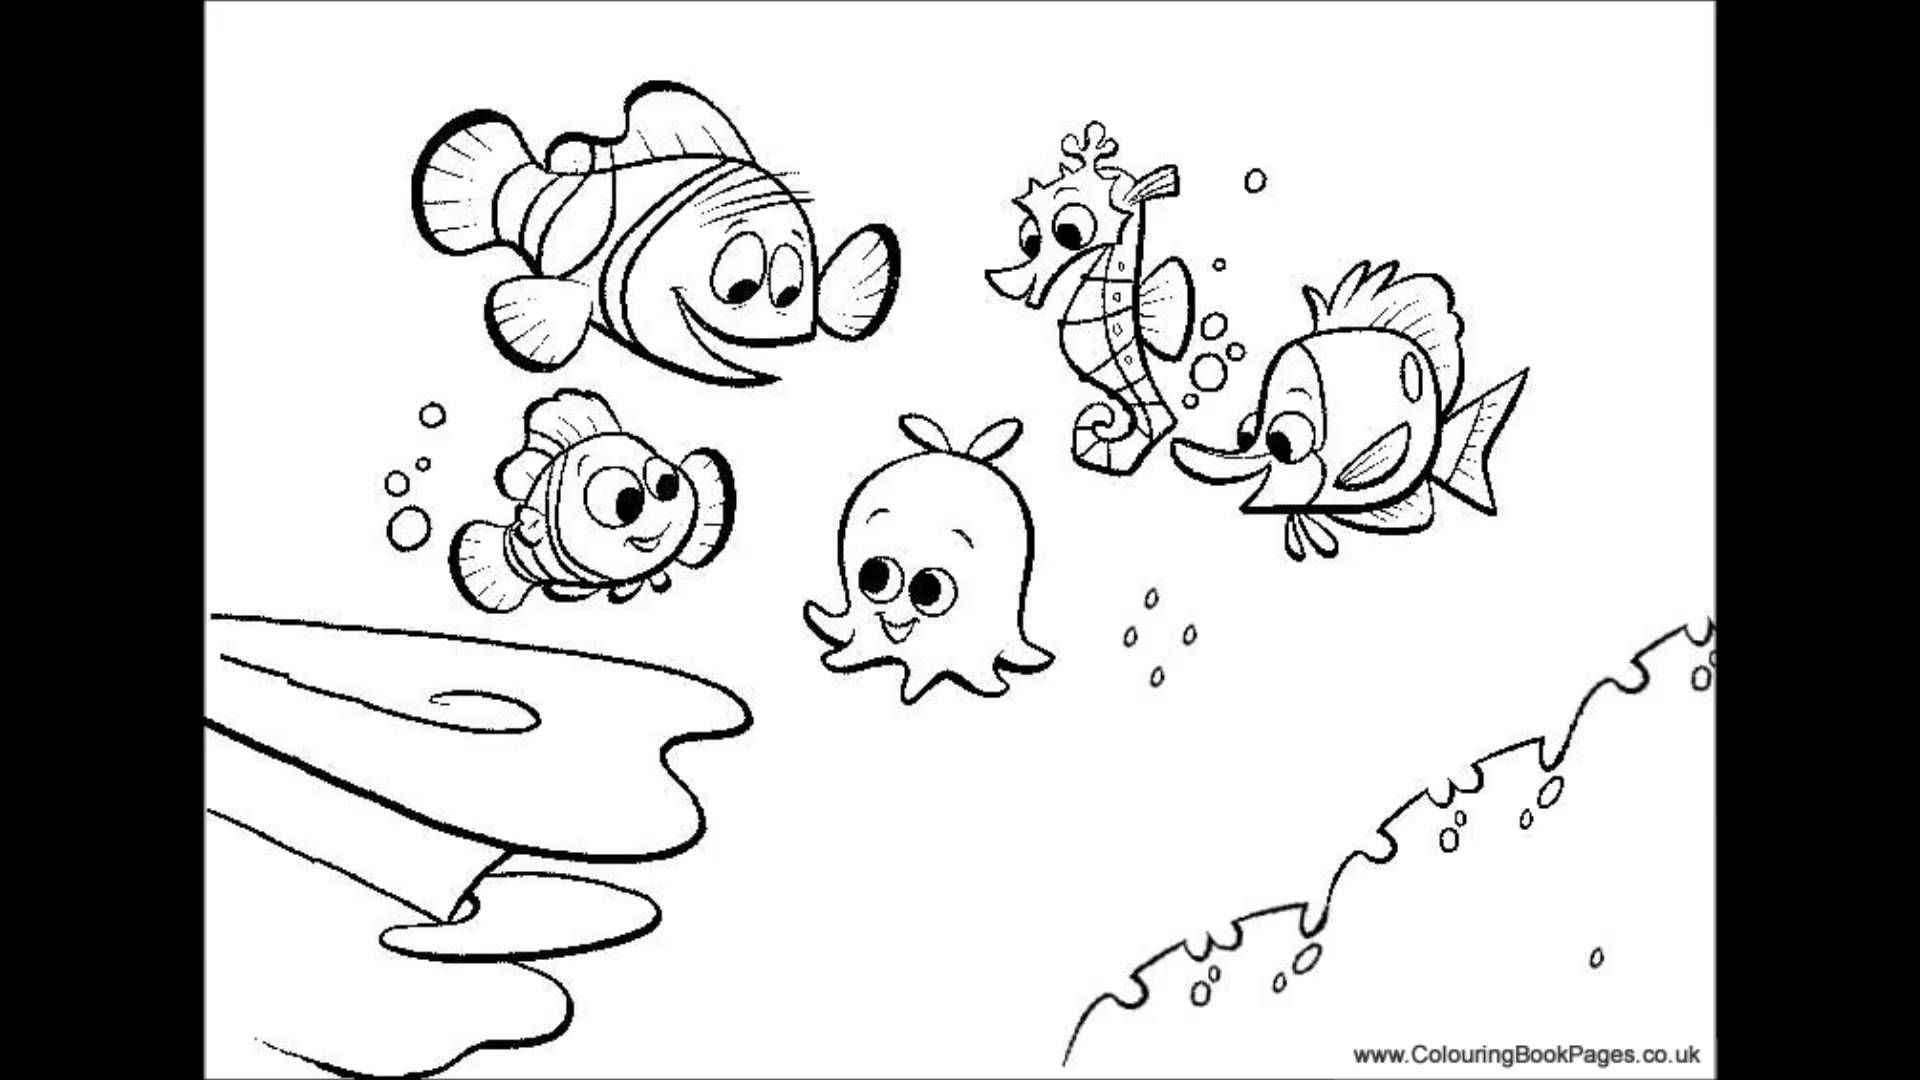 Finding Nemo Coloring Pages Bruce From Finding Nemo Coloring Pages